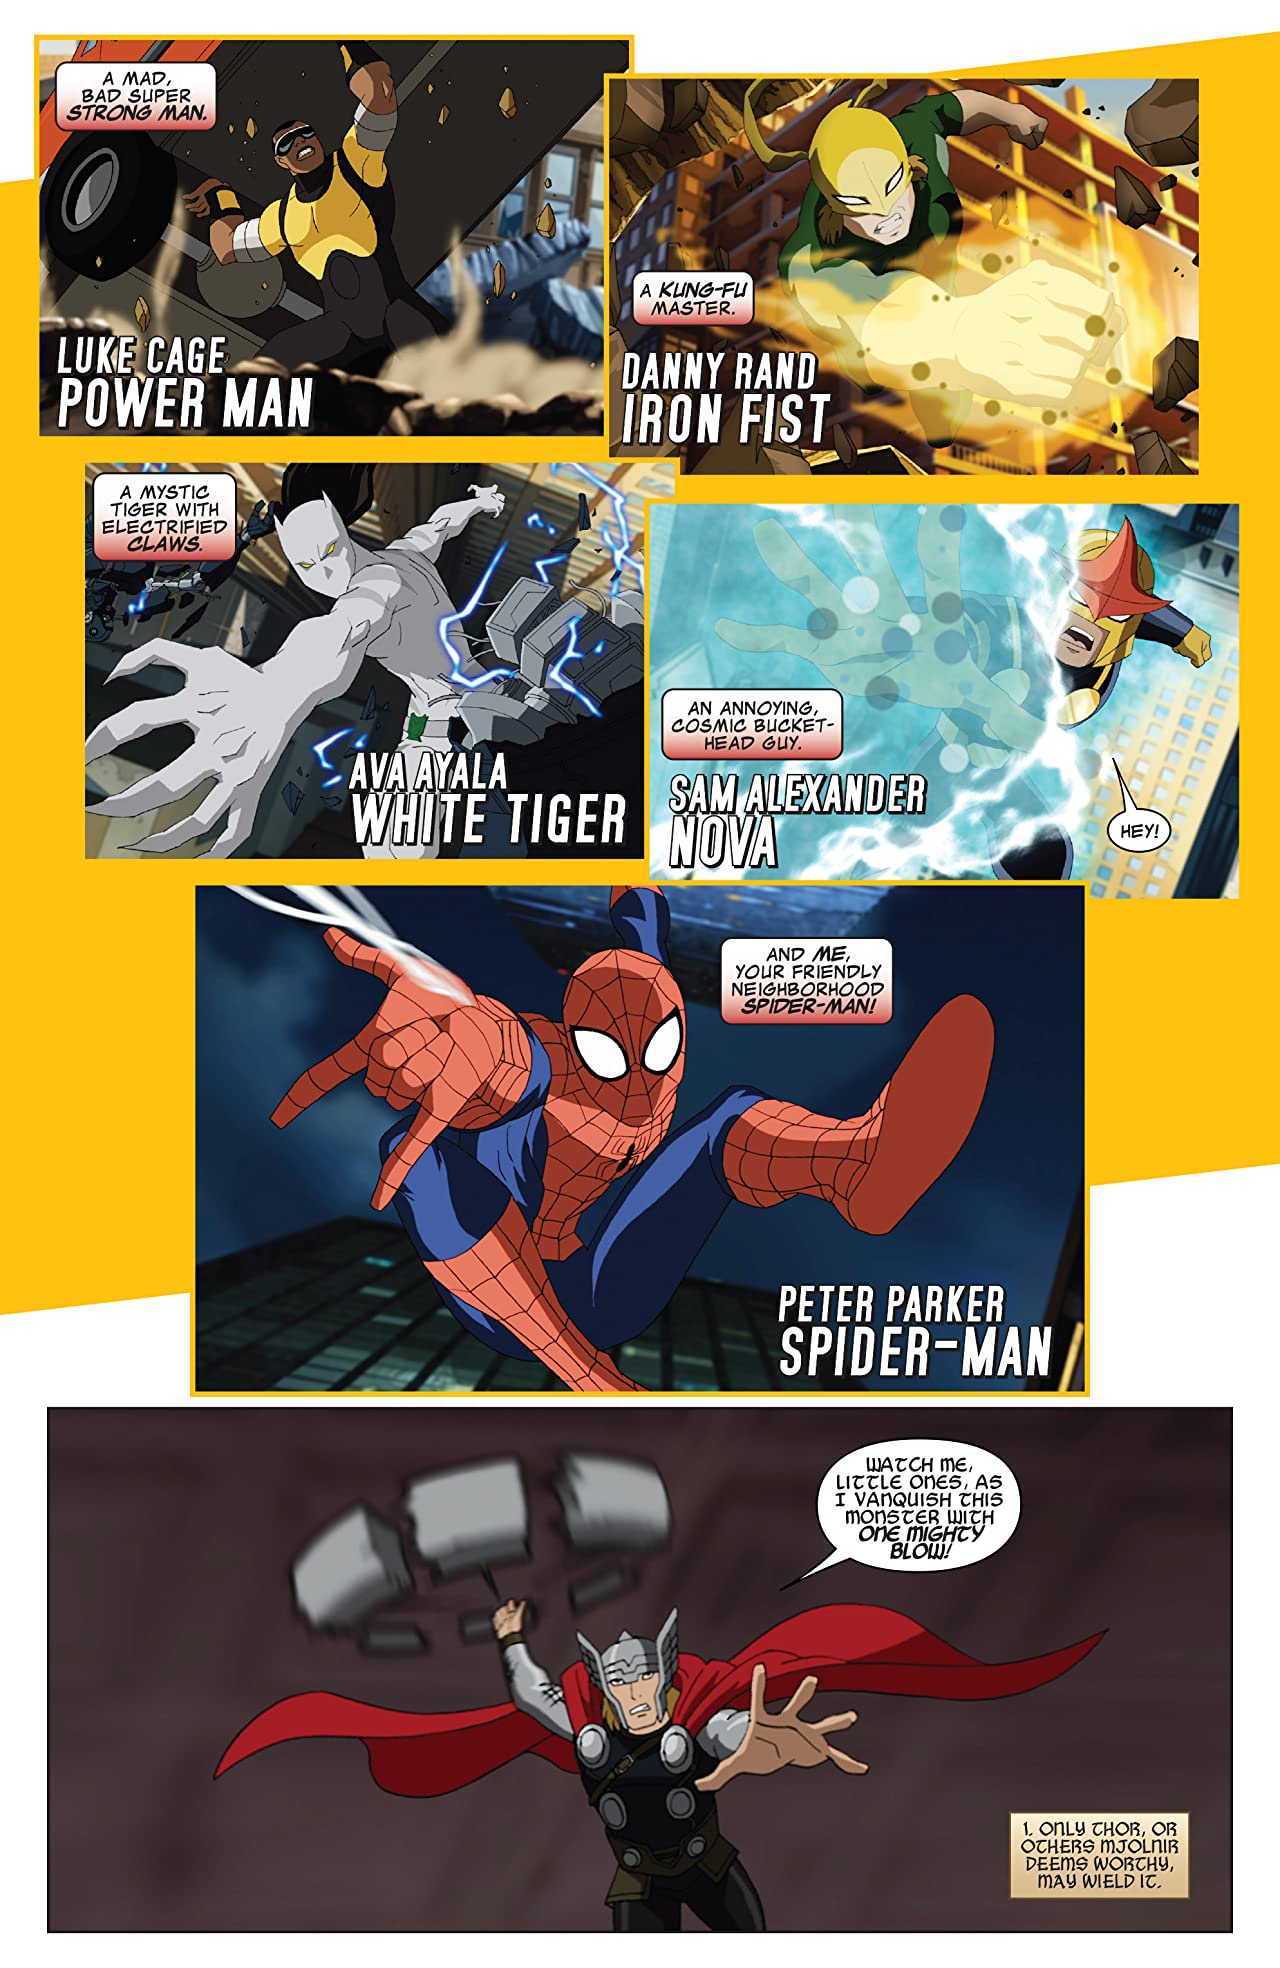 Marvel Universe Ultimate Spider-Man (2012-2014) #17